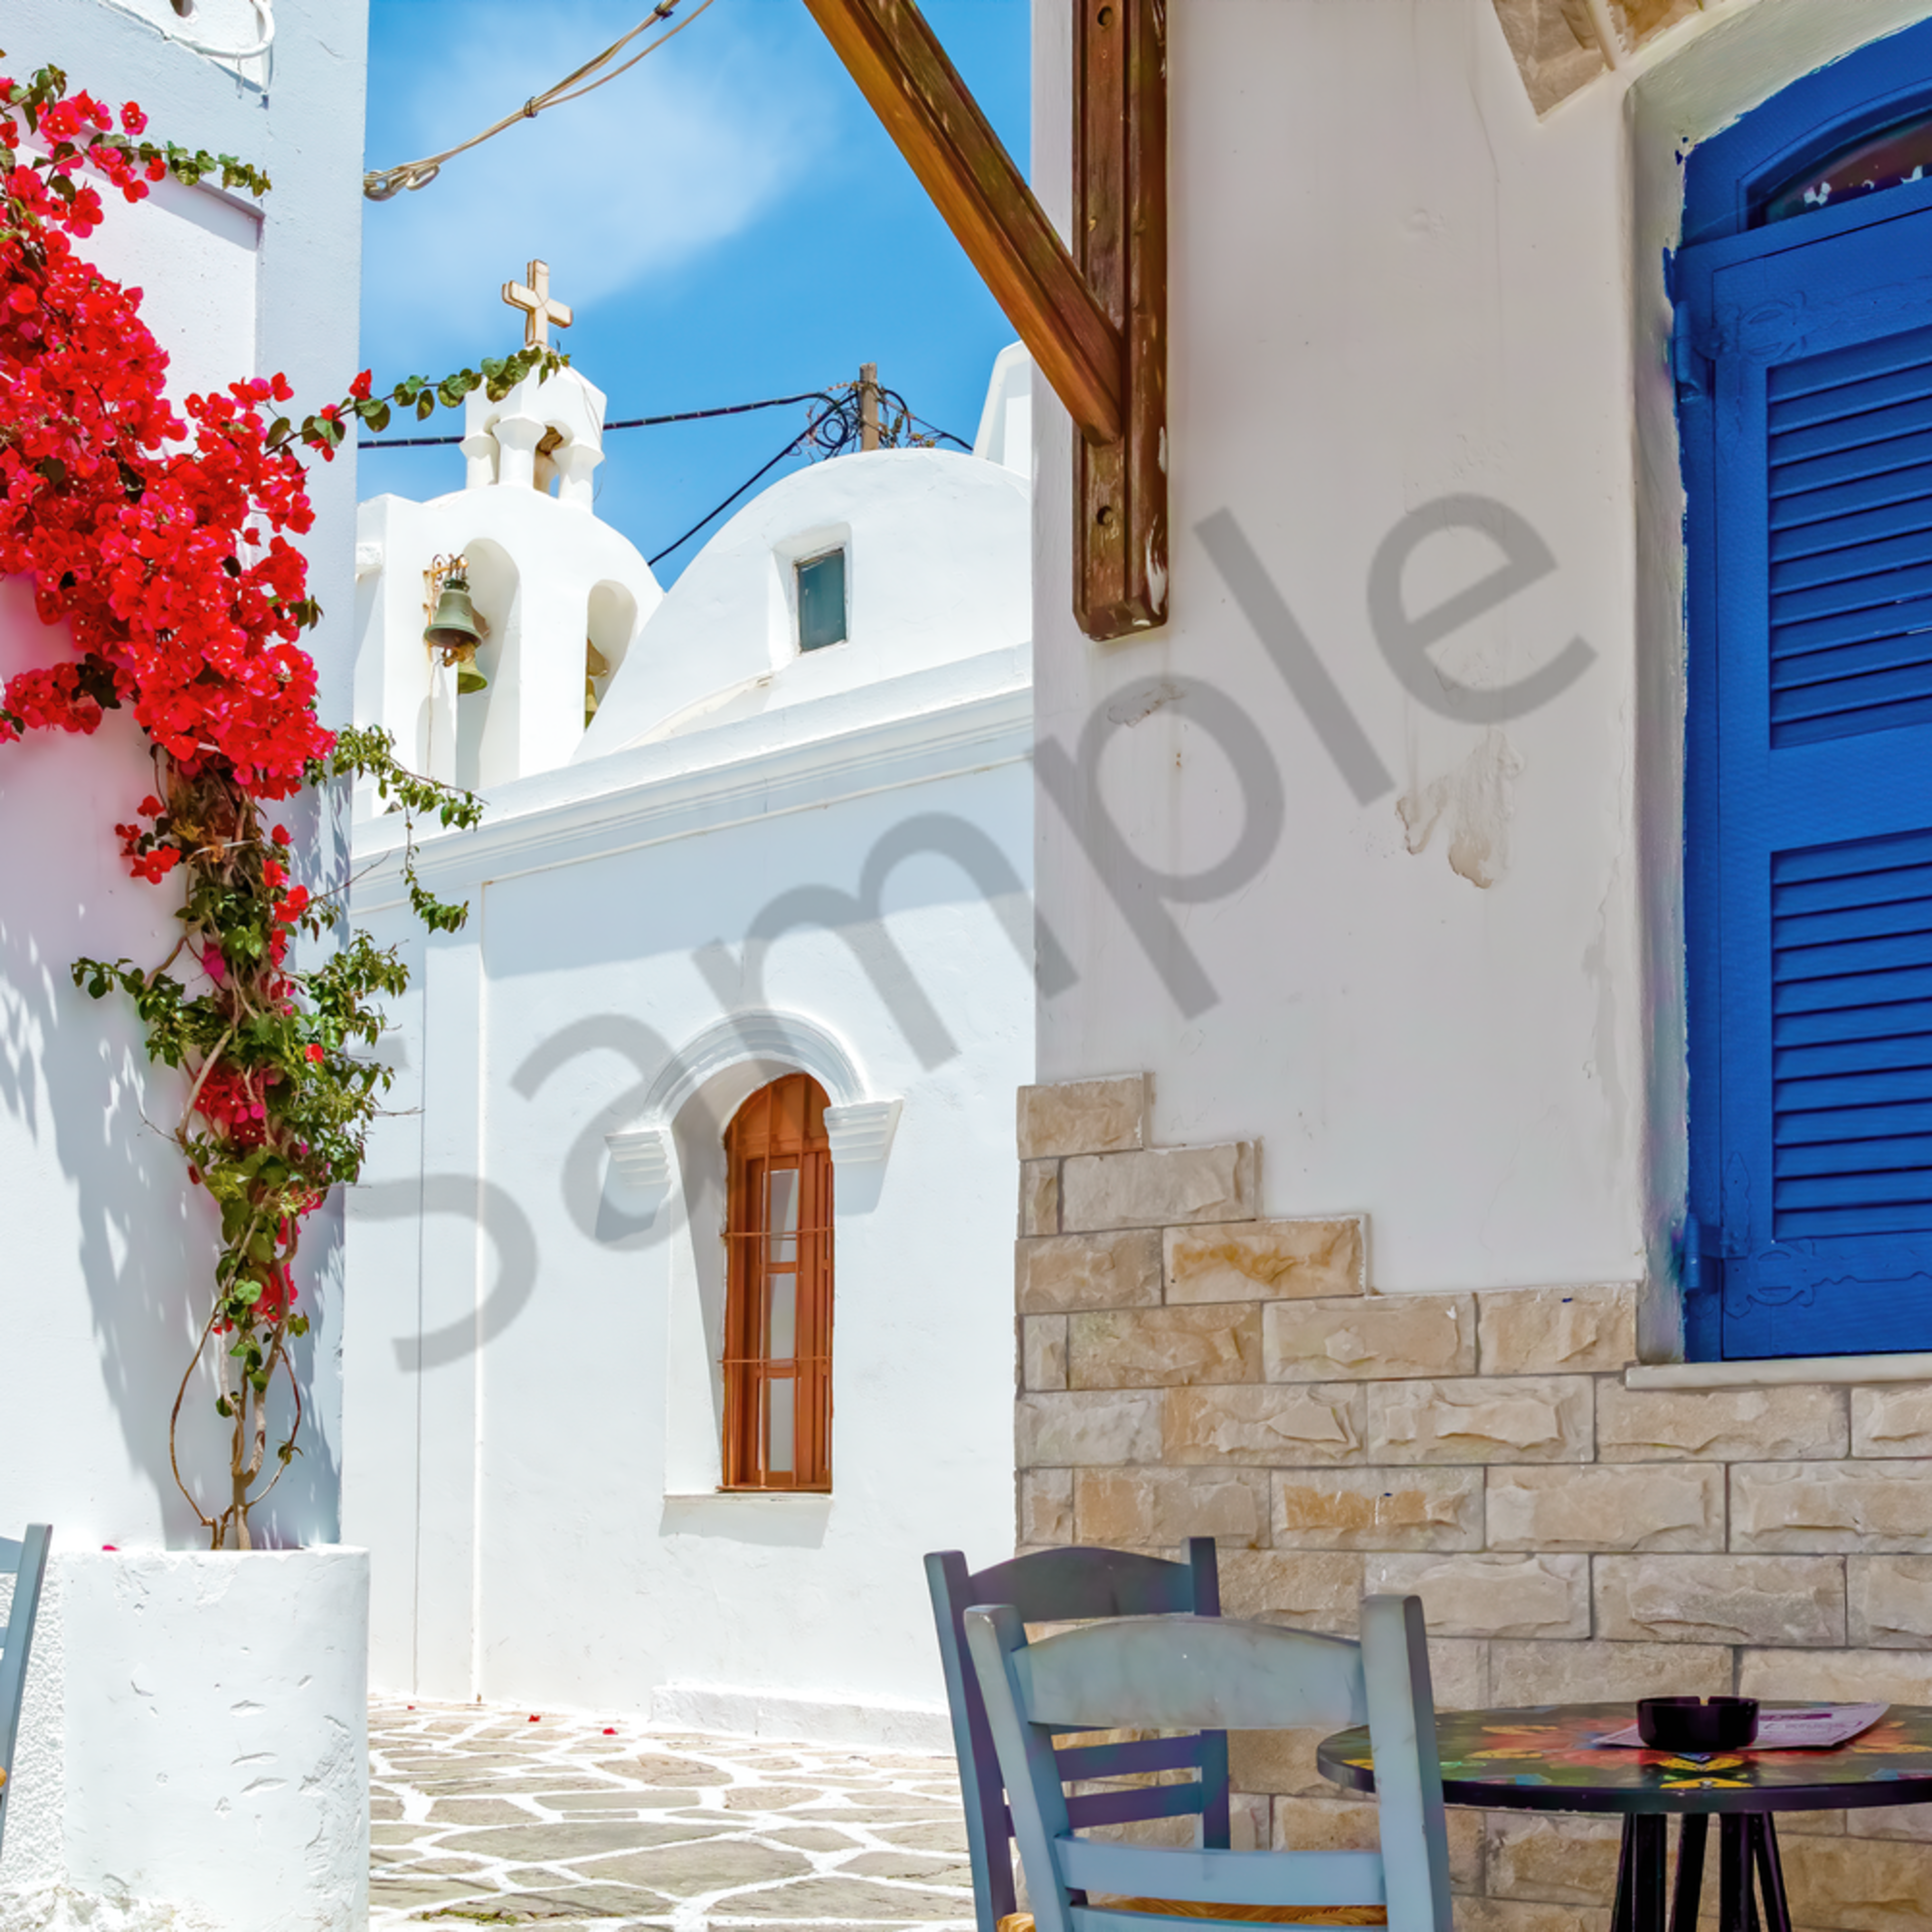 Hippie island and restaurants antiparos greece oj3mpm